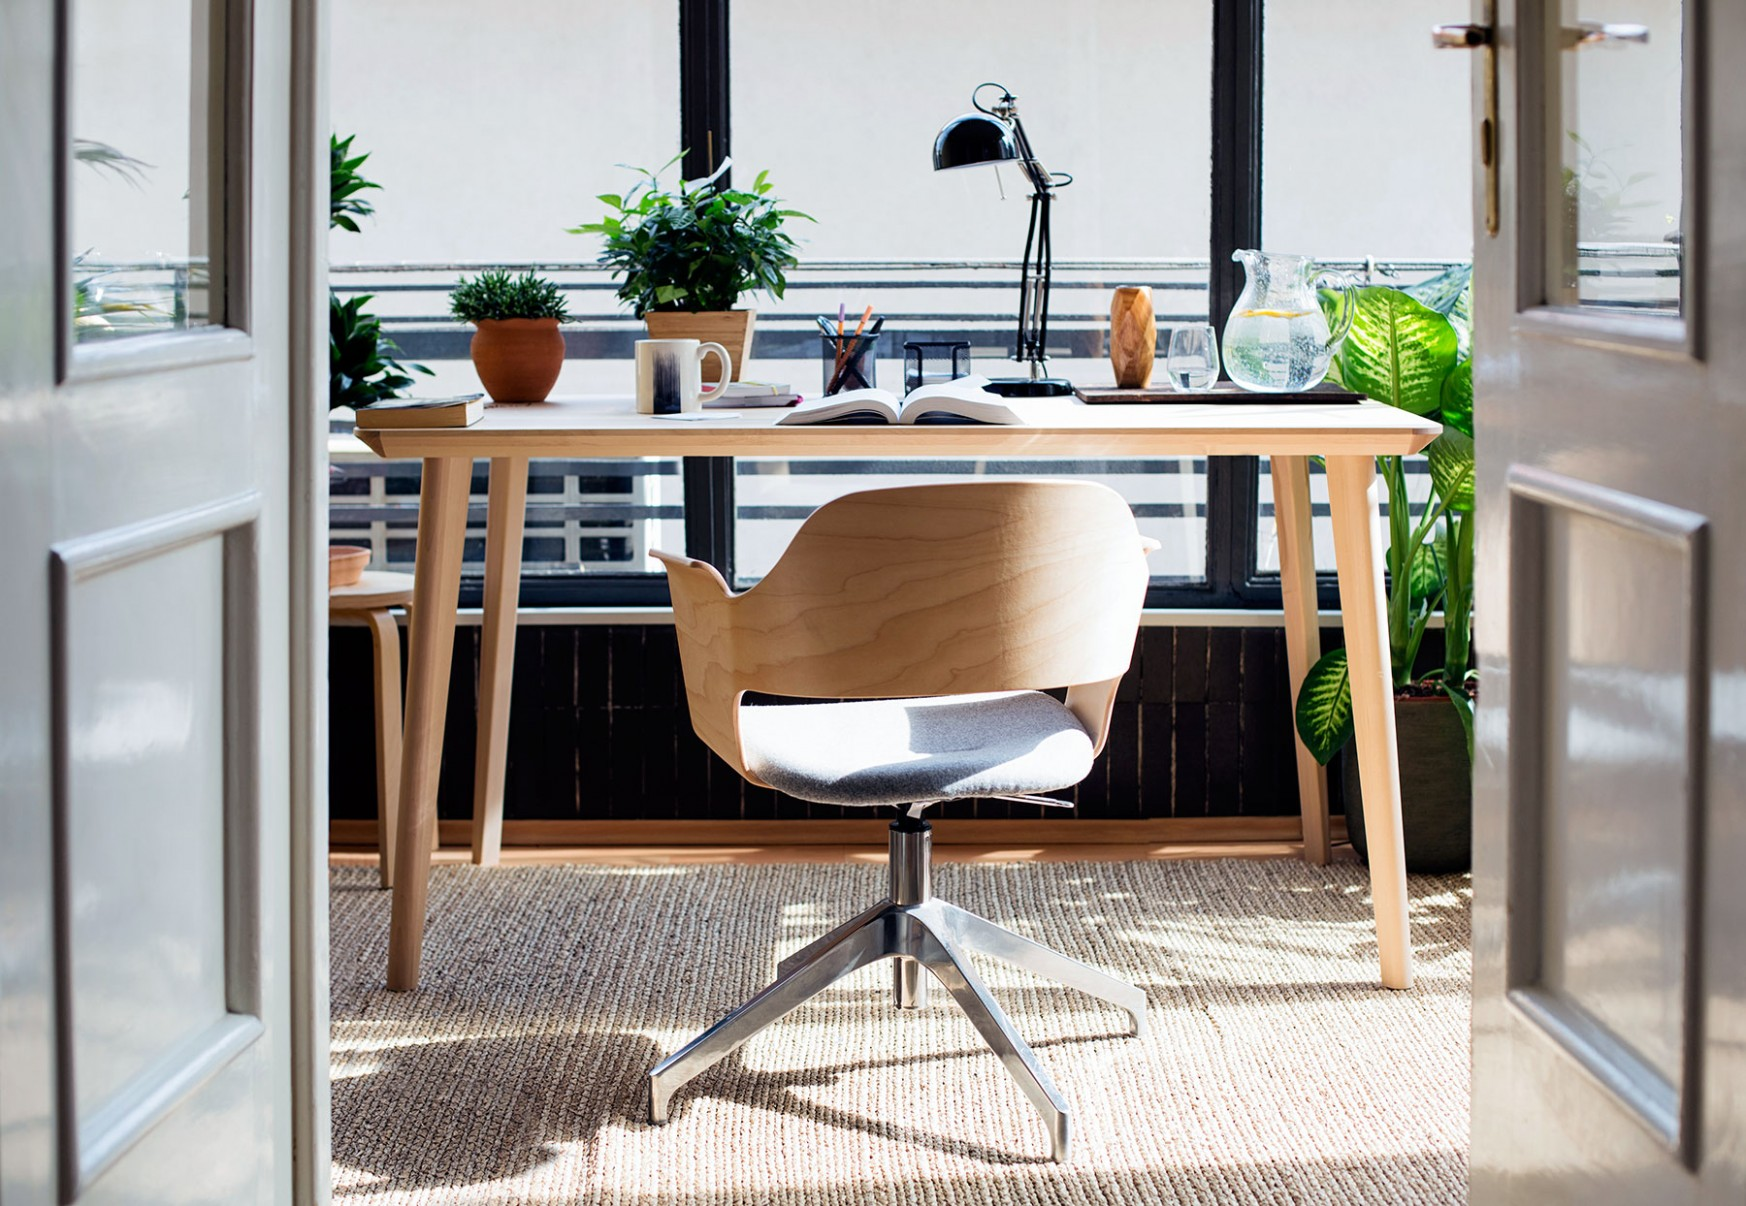 8 Home Office Ideas That Will Make You Want to Work All Day  - Home Office Location Ideas